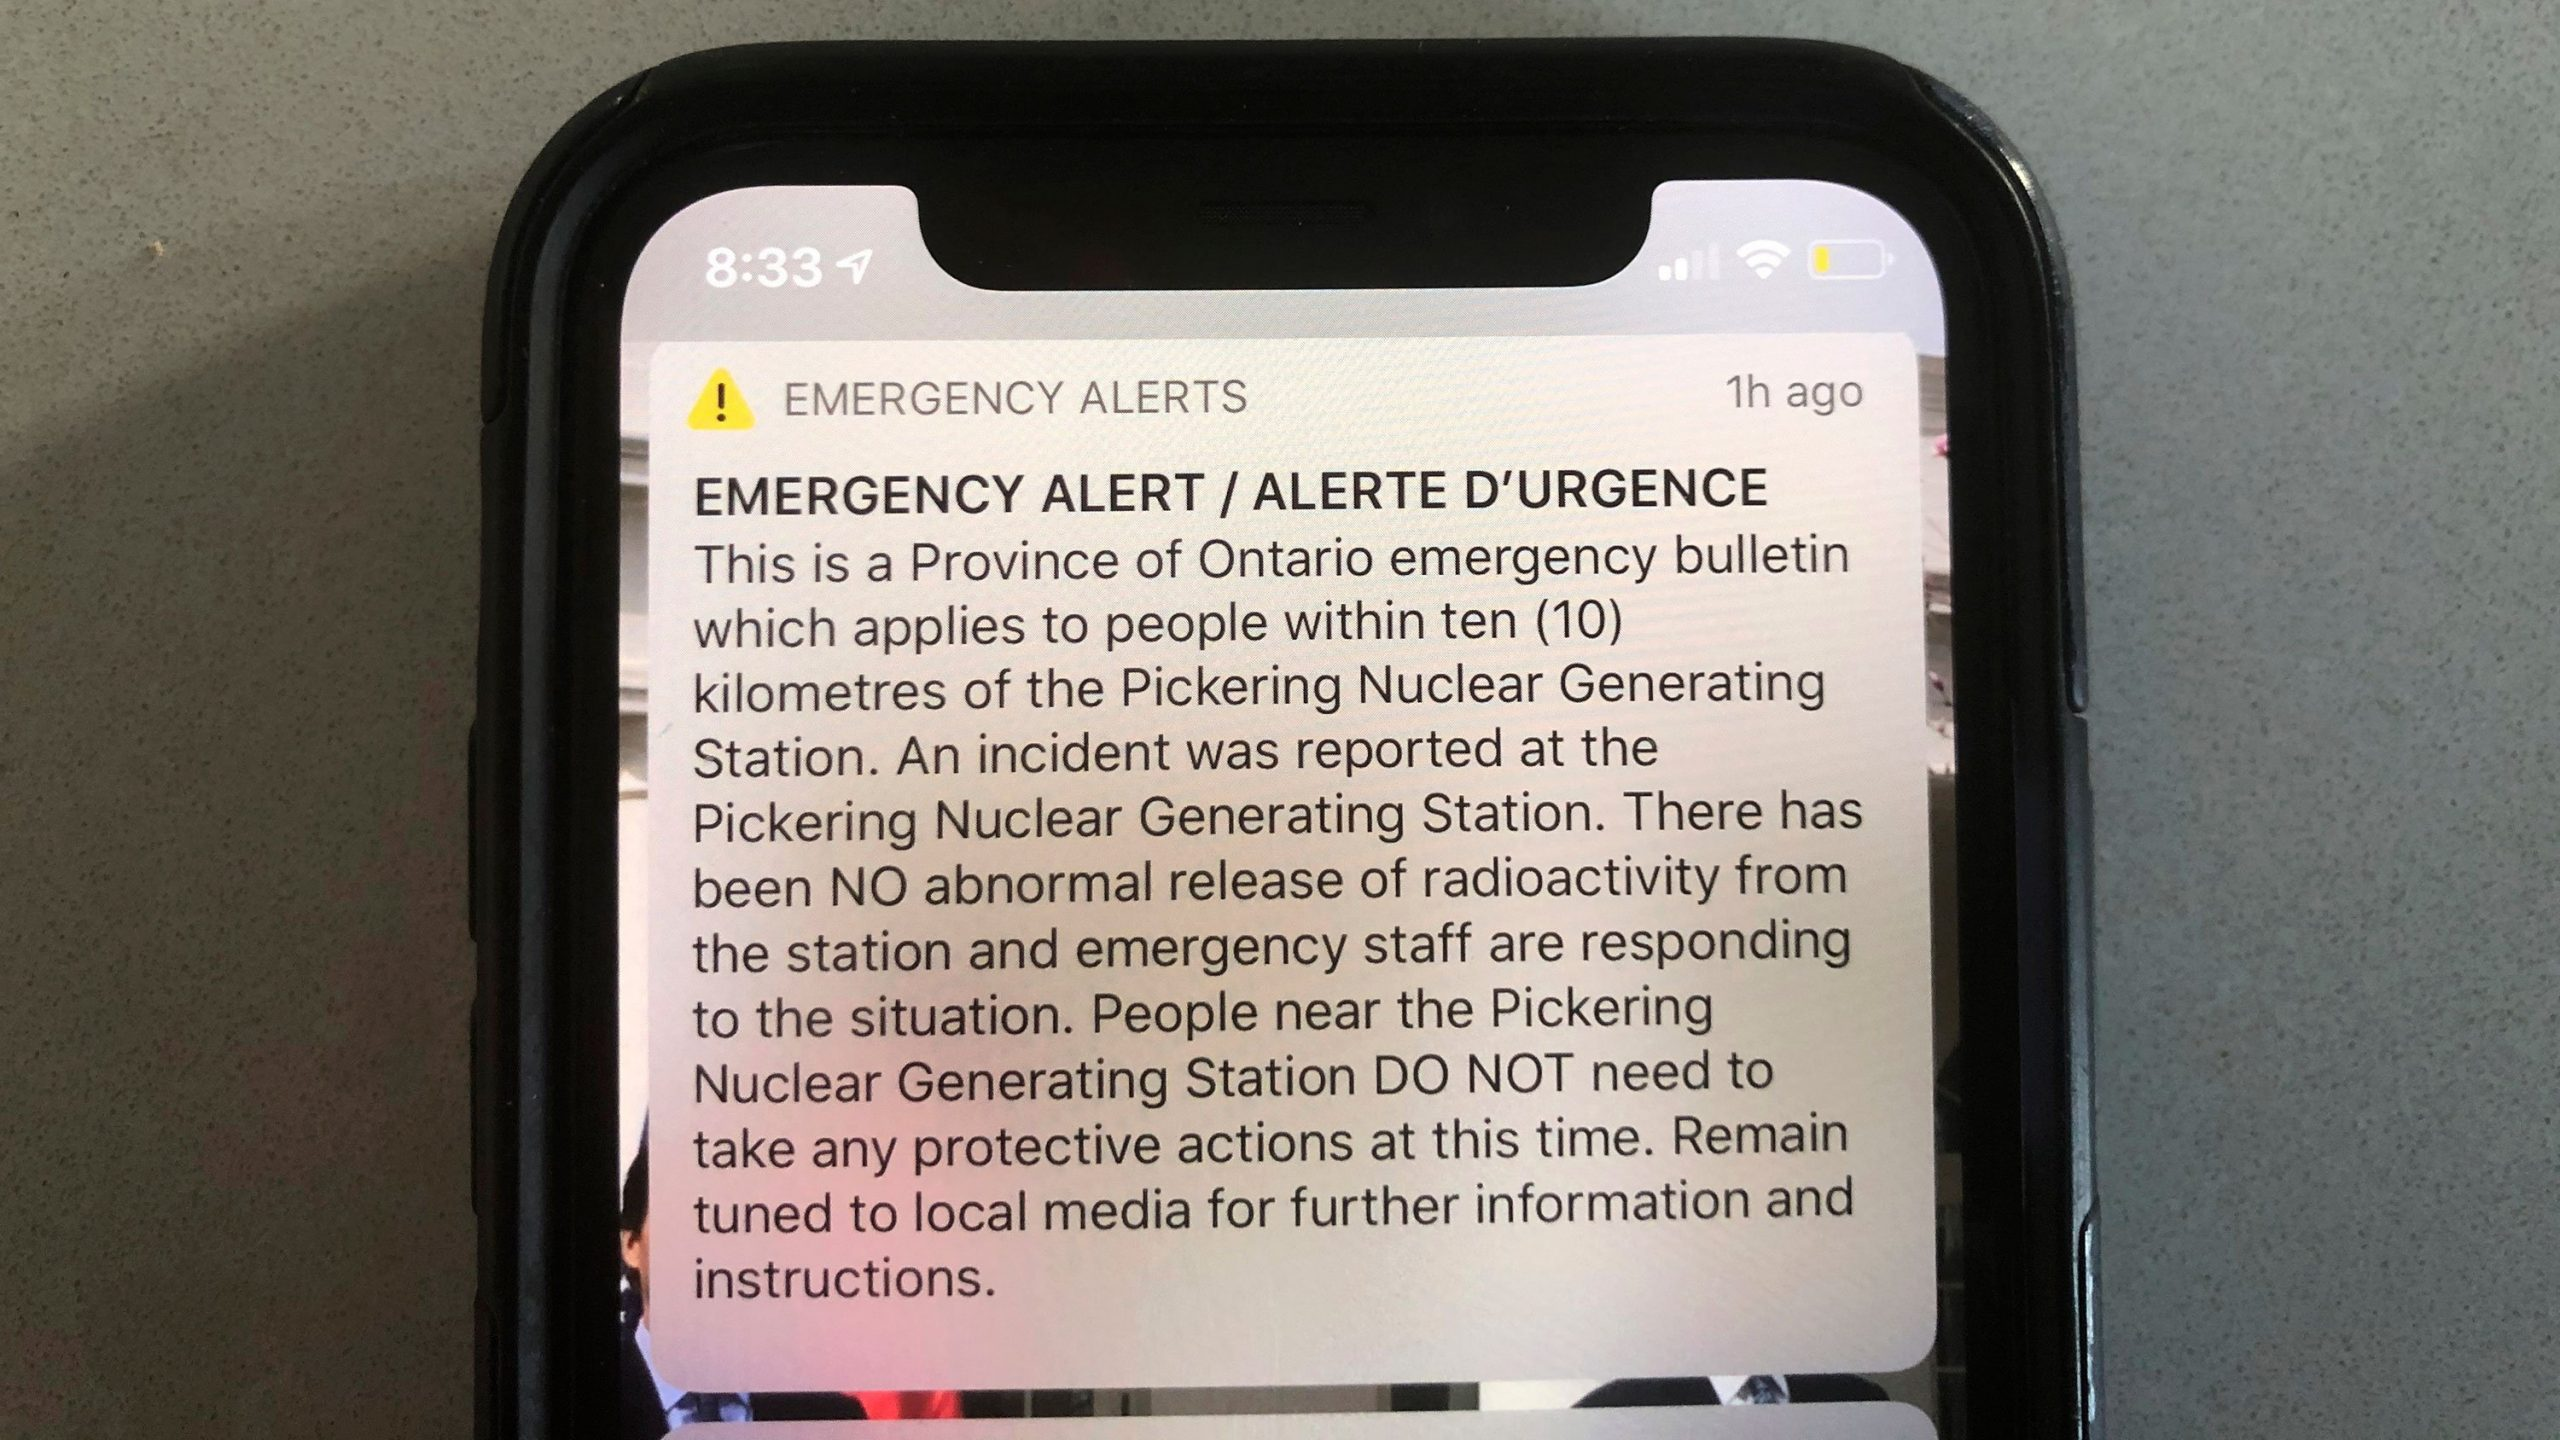 "An emergency alert issued by the Canadian province of Ontario reporting an unspecified ""incident"" at a nuclear plant is shown on a smartphone Sunday, Jan. 12, 2020. Ontario Power Generation later sent a message saying the alert ""was sent in error."" The initial message said the incident had occurred at the Pickering Nuclear Generating Station, though it added there had been no abnormal release of radioactivity from the station. (AP Photo/Robert Gillies via CNN)"